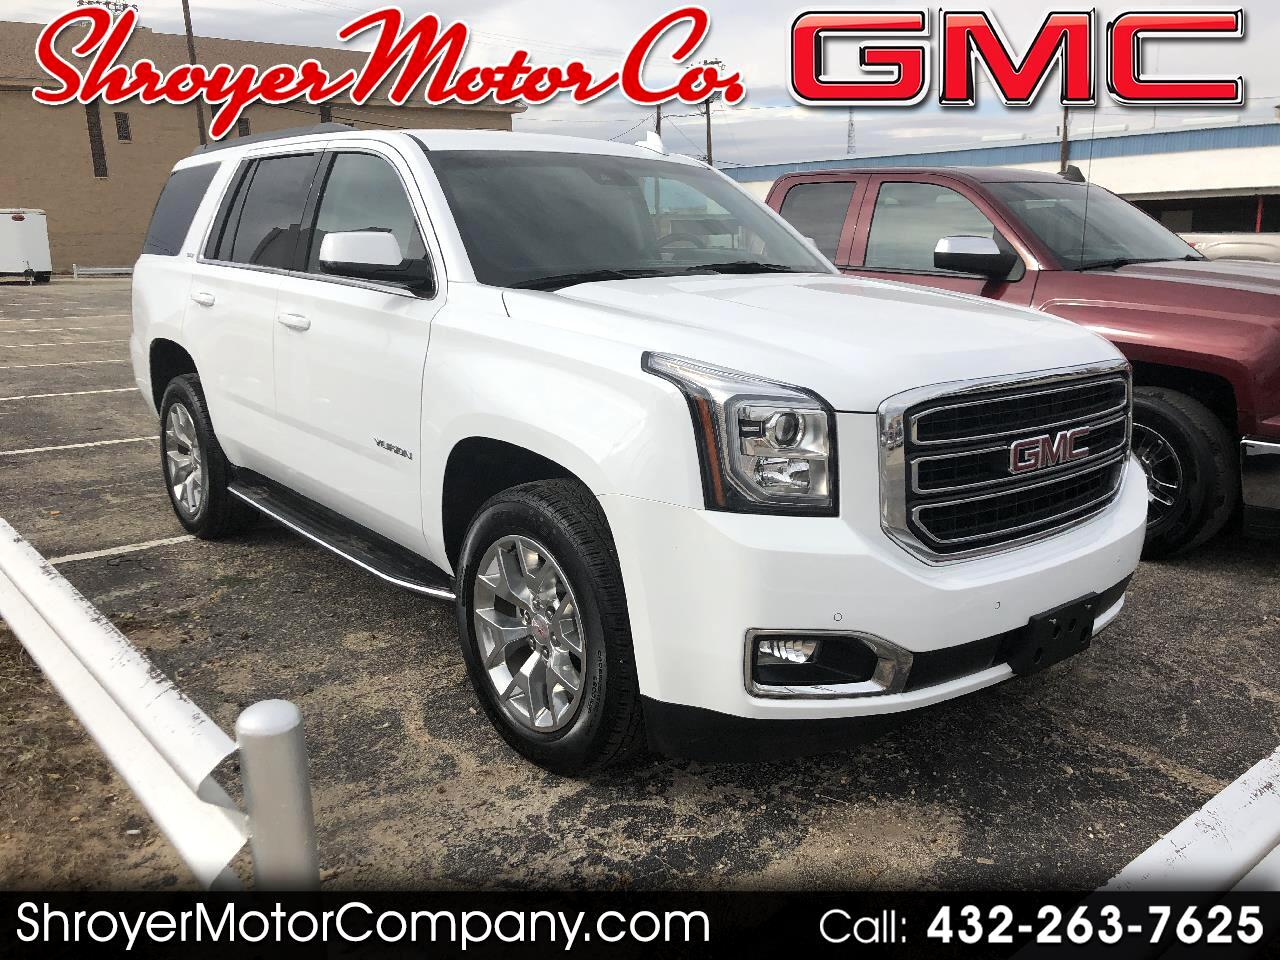 New And Used Cars For Sale Big Spring Tx Shroyer Motor Company